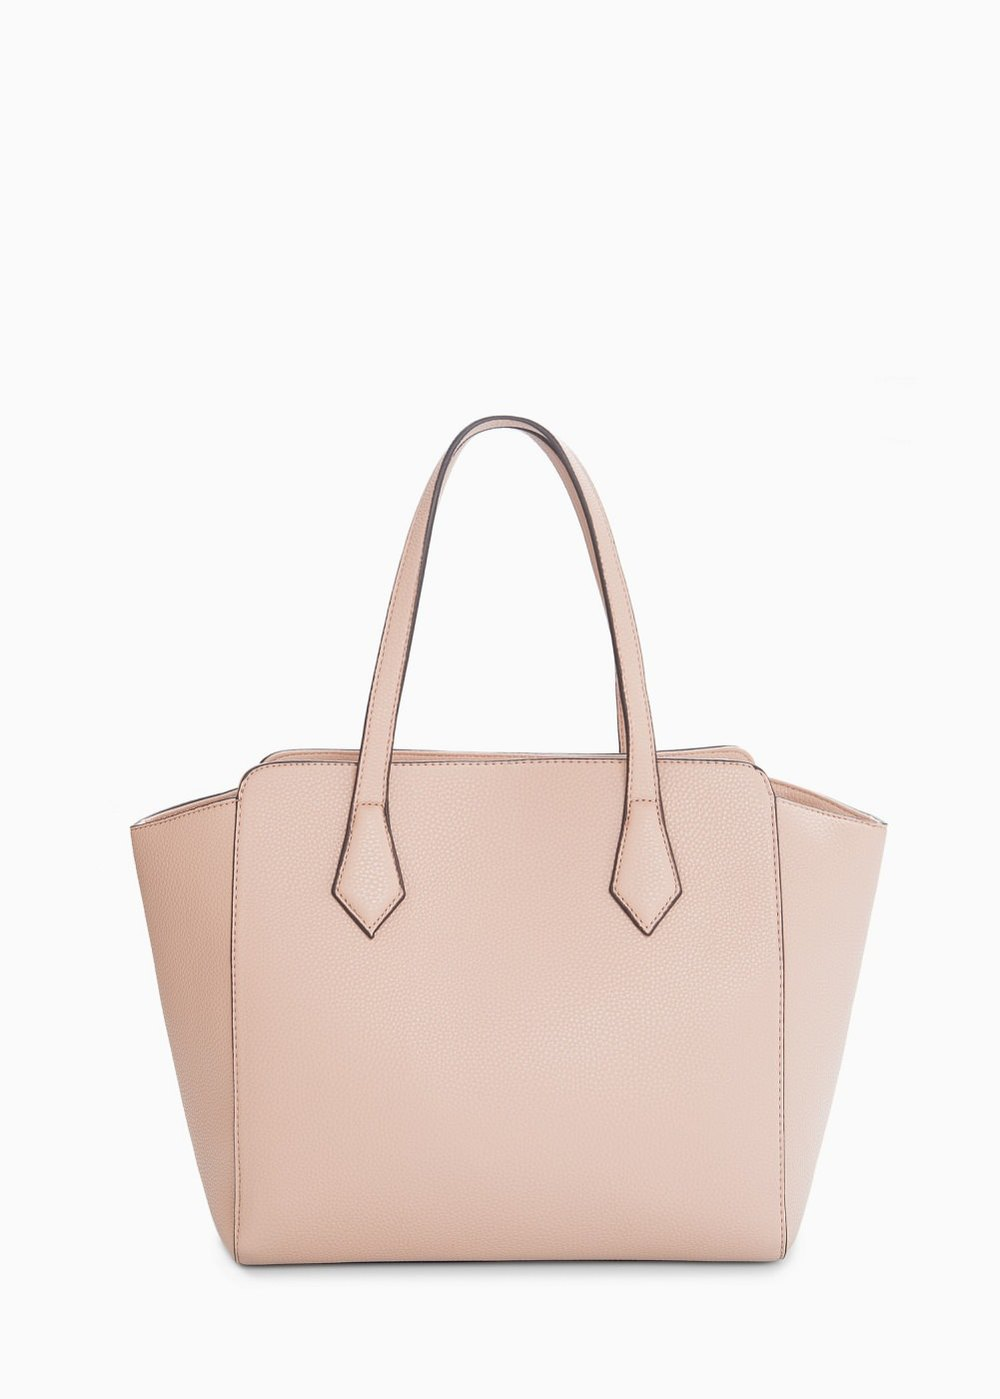 Pebbled Tote Bag , sale $39.99